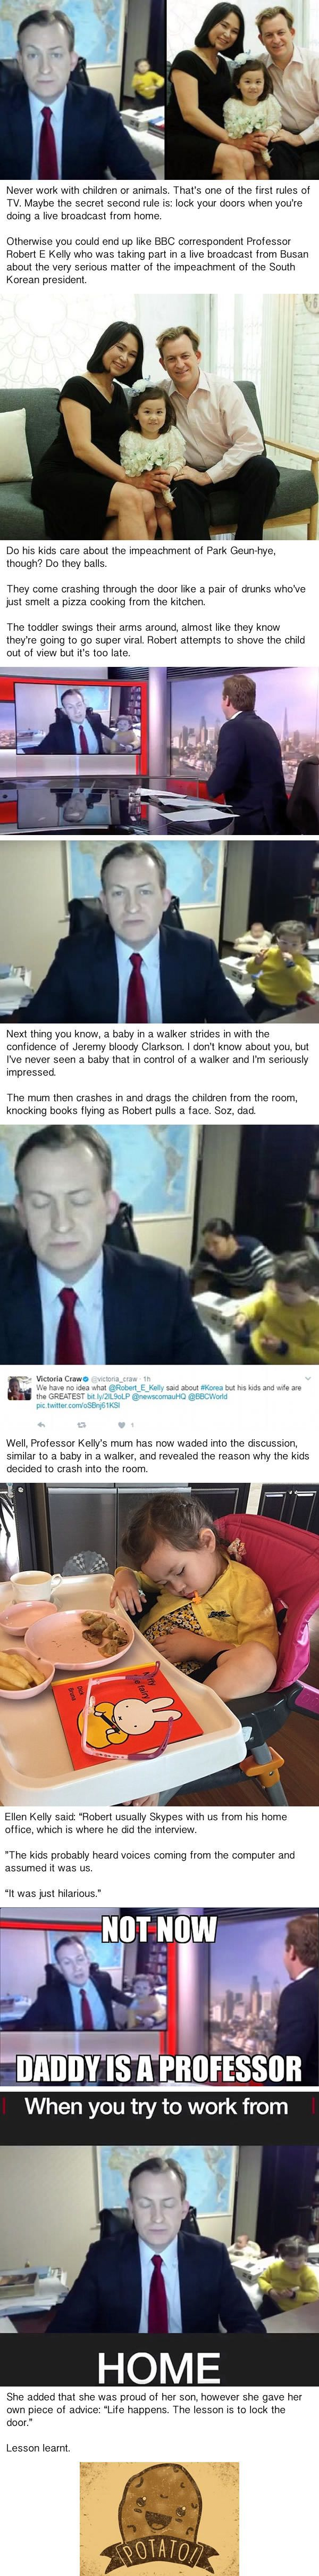 Mother Of BBC News Live Guest Reveals Reason Why Kids Burst Through The Door